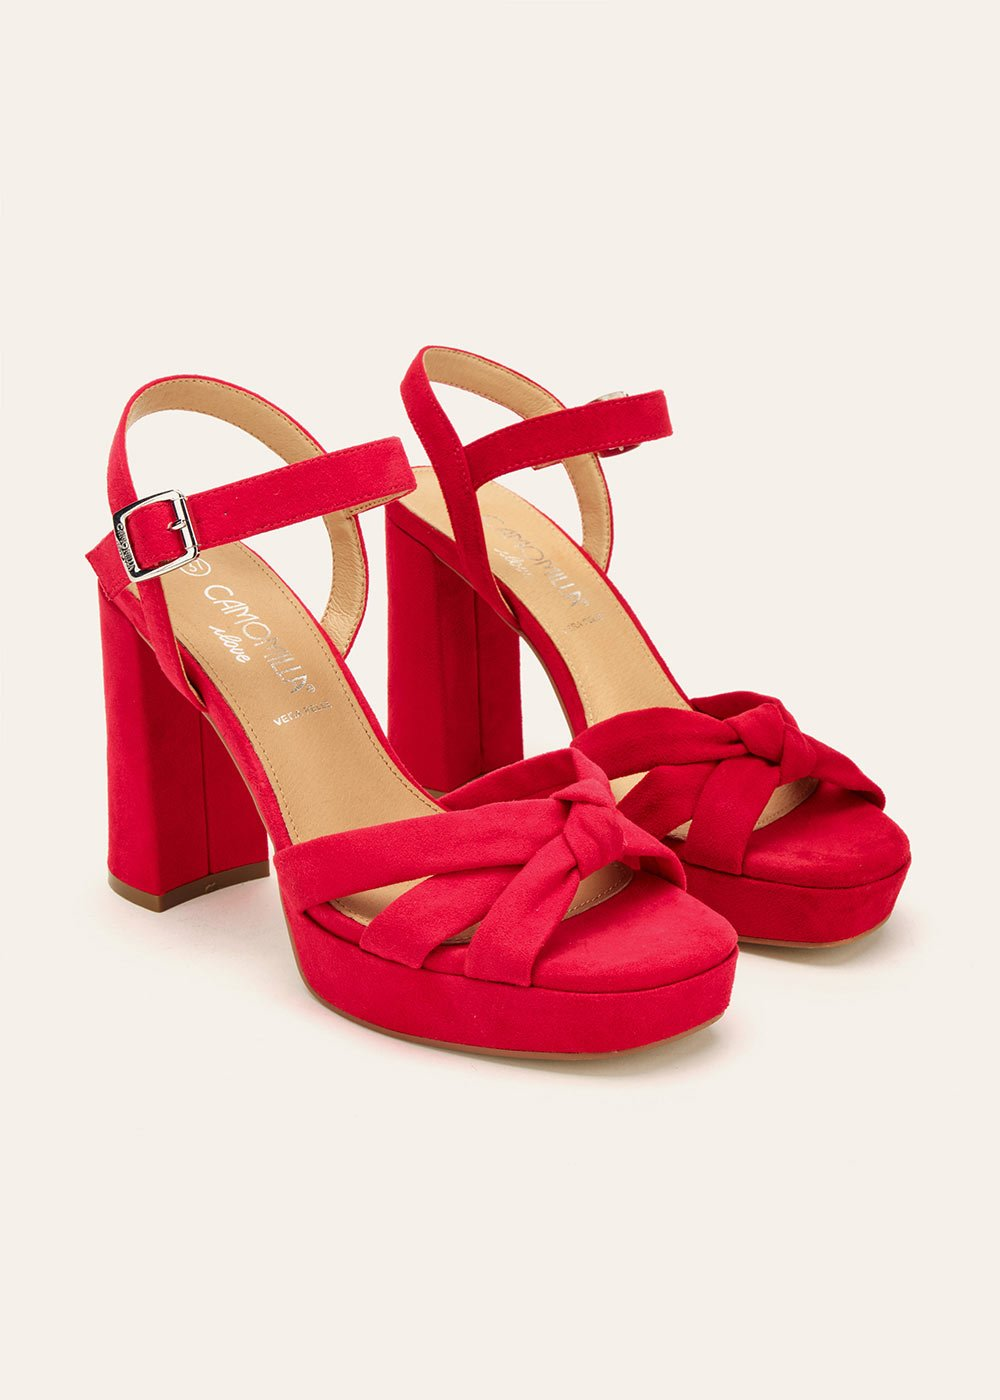 Syra sandal with ankle strap - Cherry Red - Woman